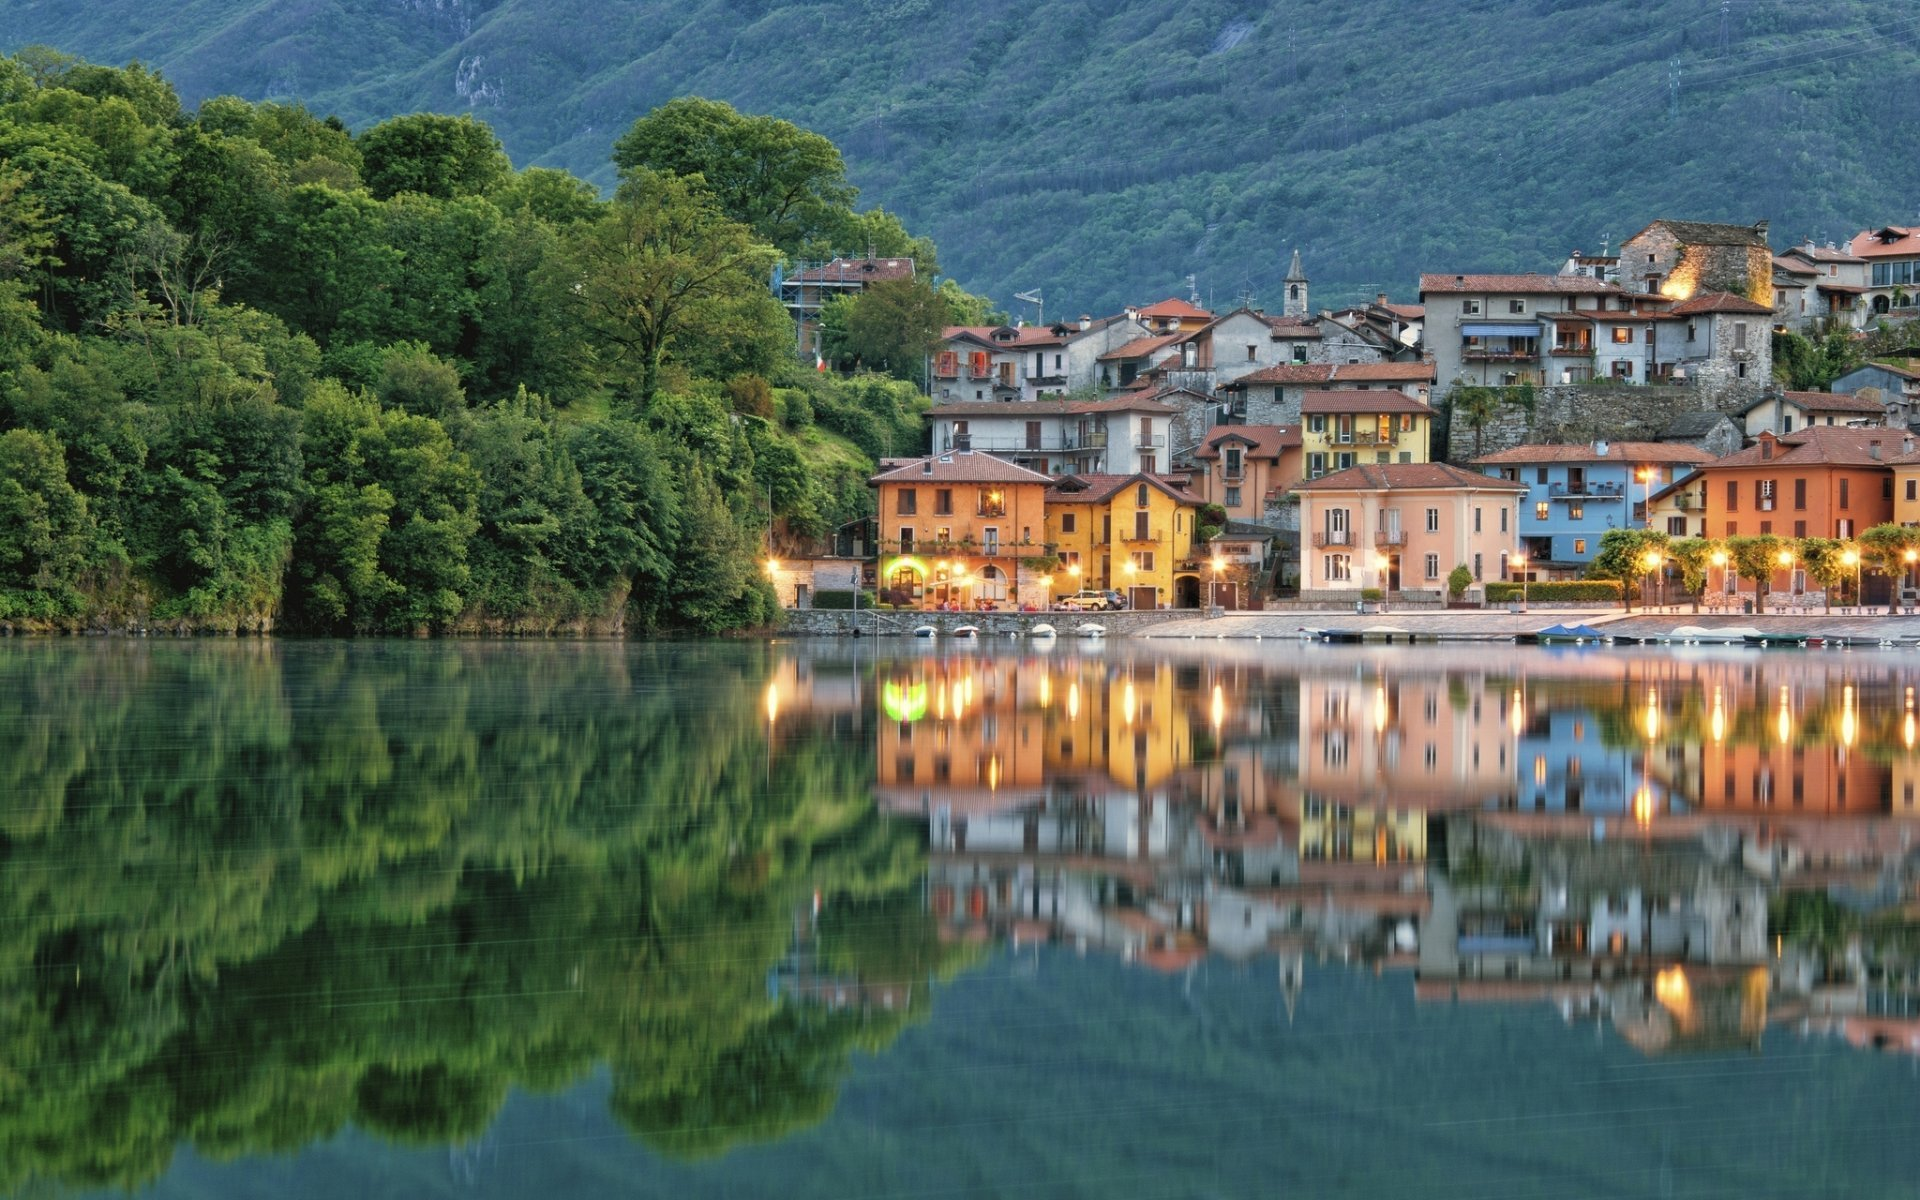 Mergozzo and its lake